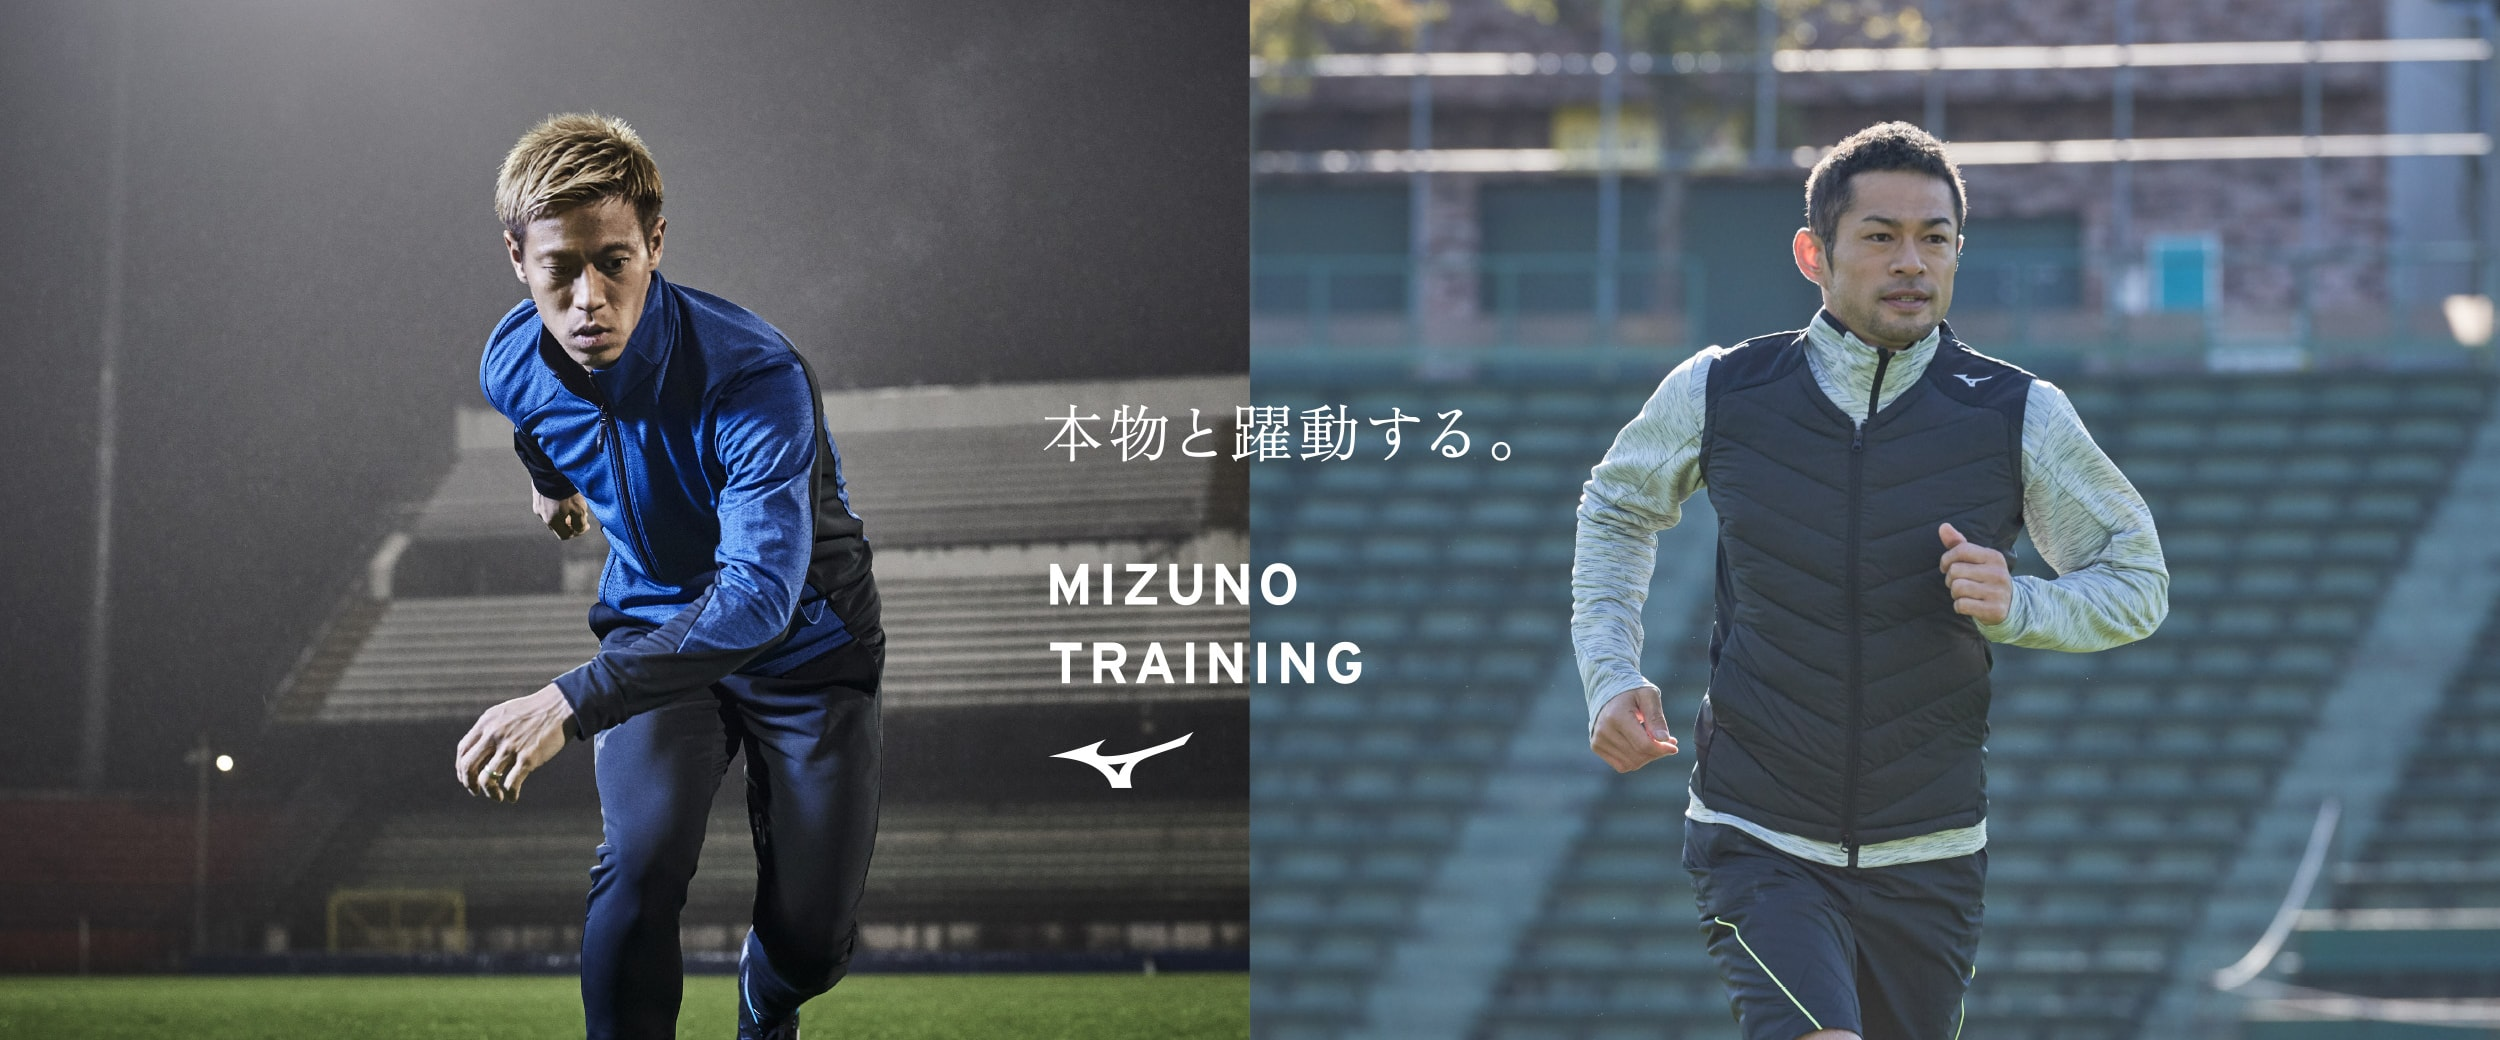 本物と躍動する。 MIZUNO TRAINING 2017 SPRING & SUMMER